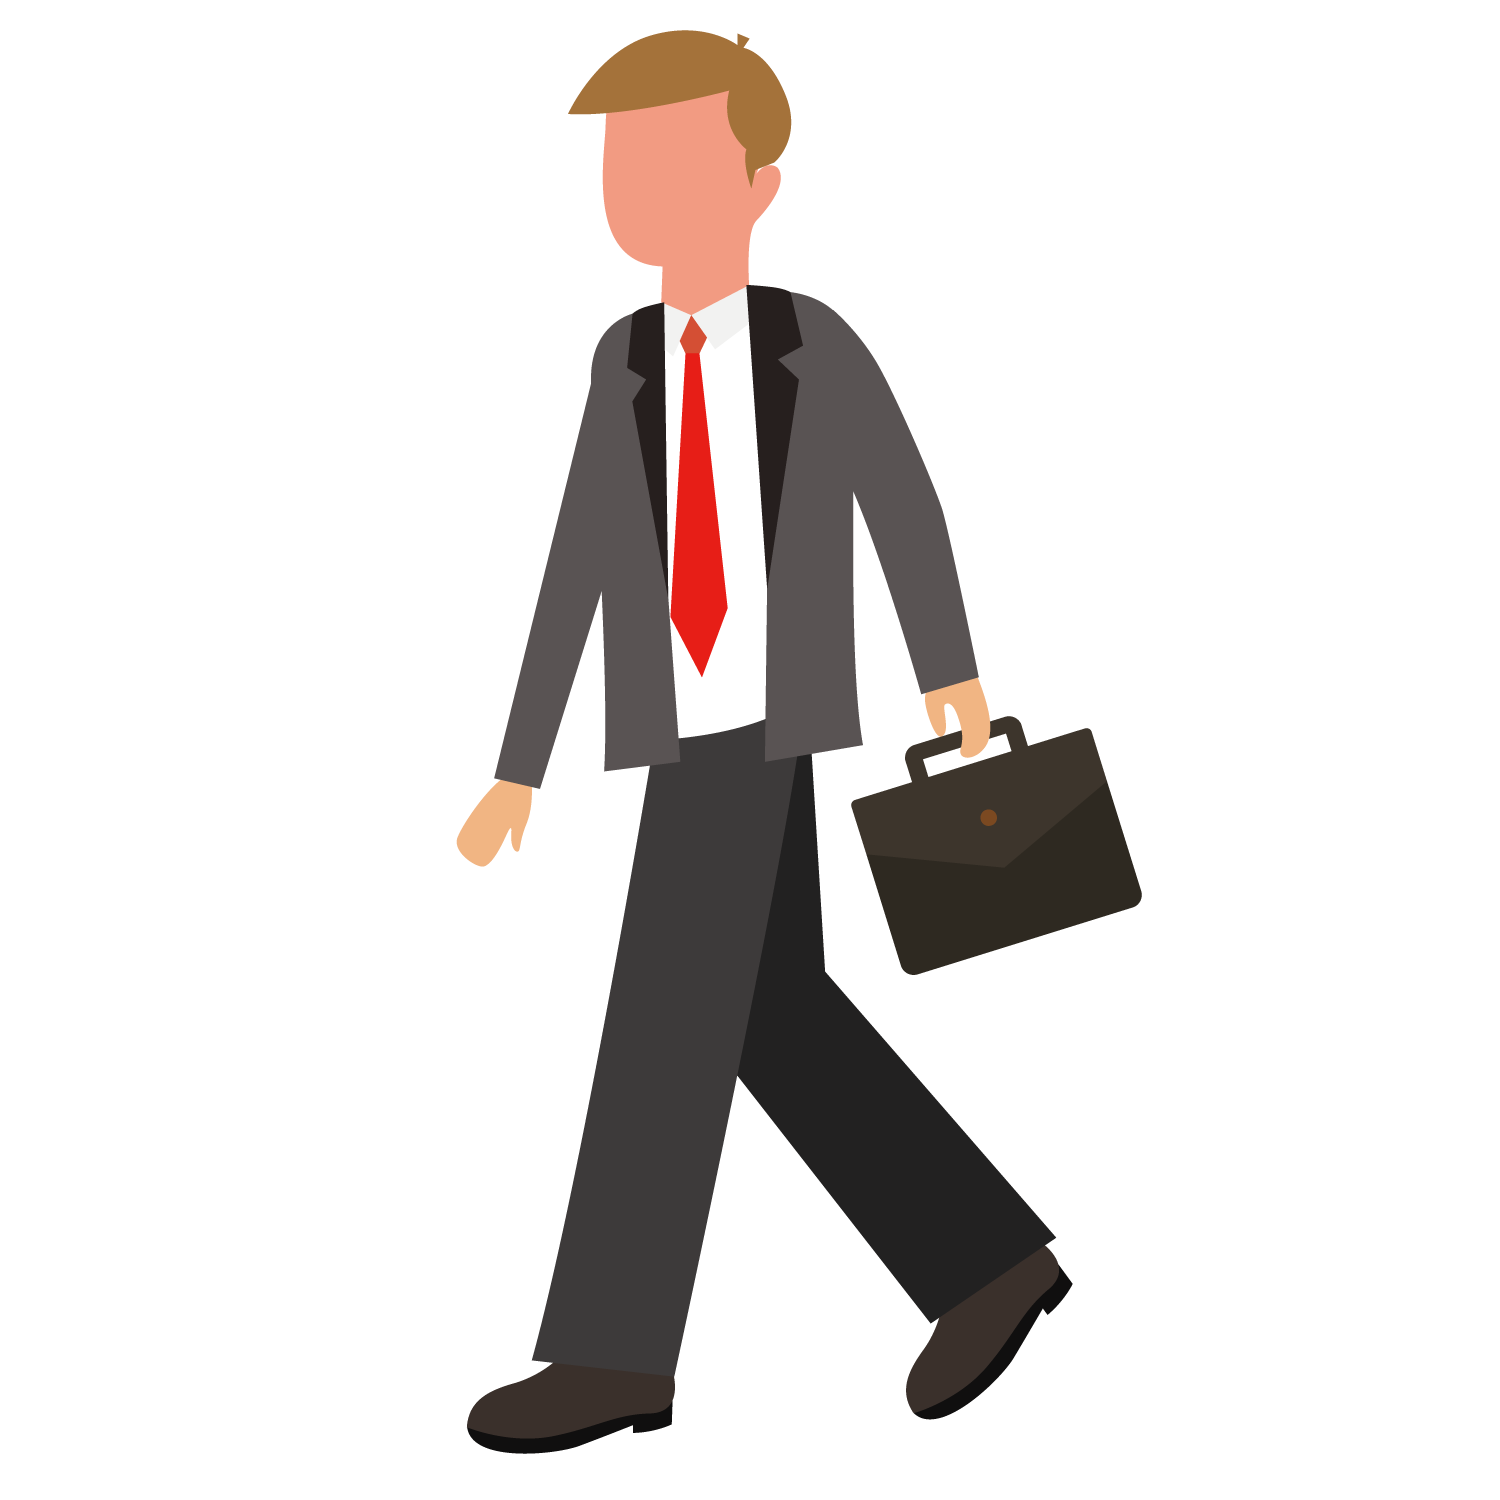 Vector suit job ad. Briefcase business people holding